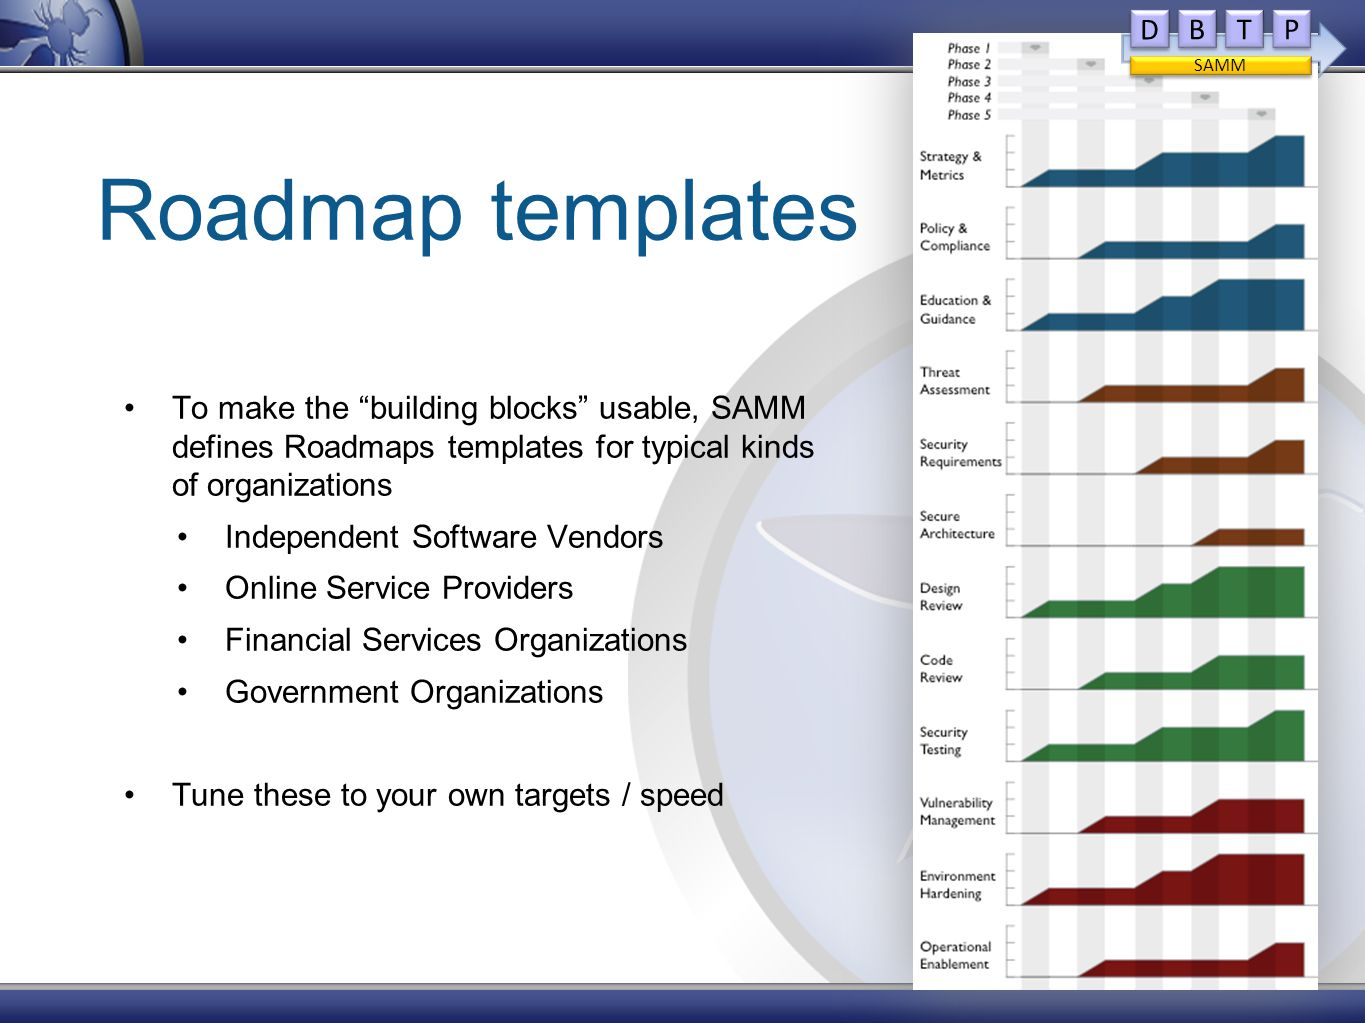 Roadmap templates To make the building blocks usable, SAMM defines Roadmaps templates for typical kinds of organizations Independent Software Vendors Online Service Providers Financial Services Organizations Government Organizations Tune these to your own targets / speed D D B B T T P P SAMM